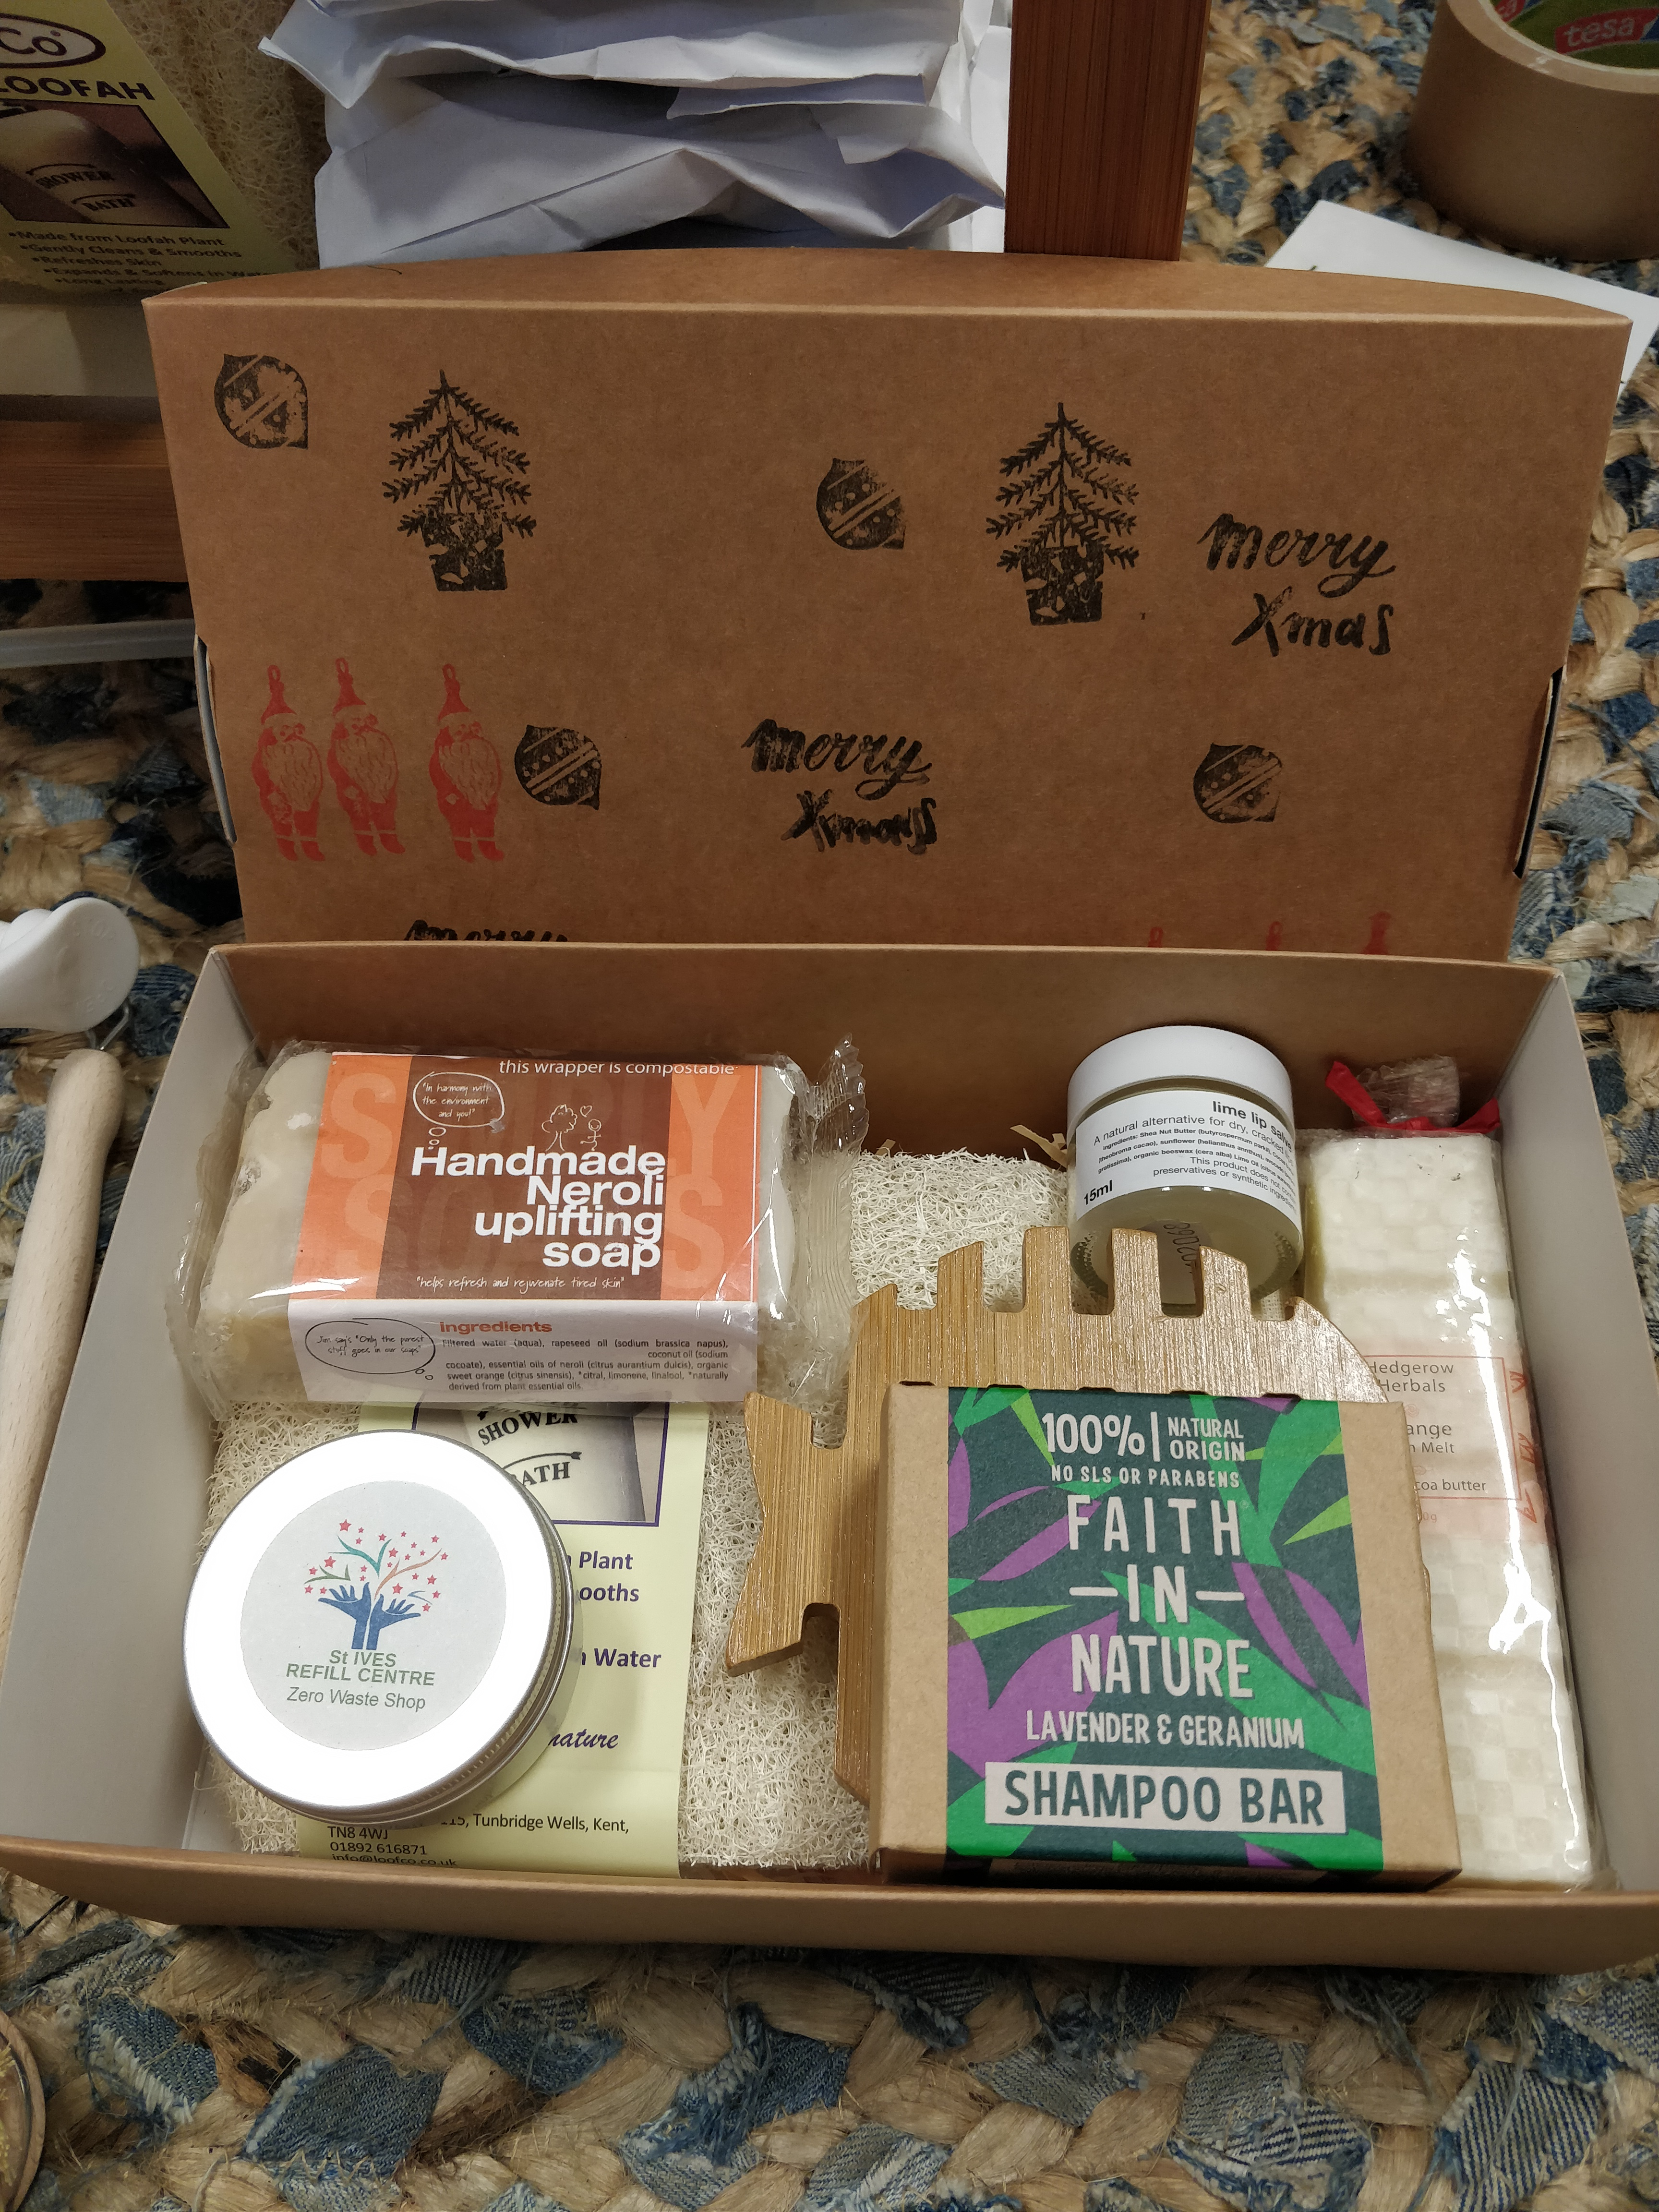 Pamper Gift Box - zero waste eco friendly gifts to pamper someone special